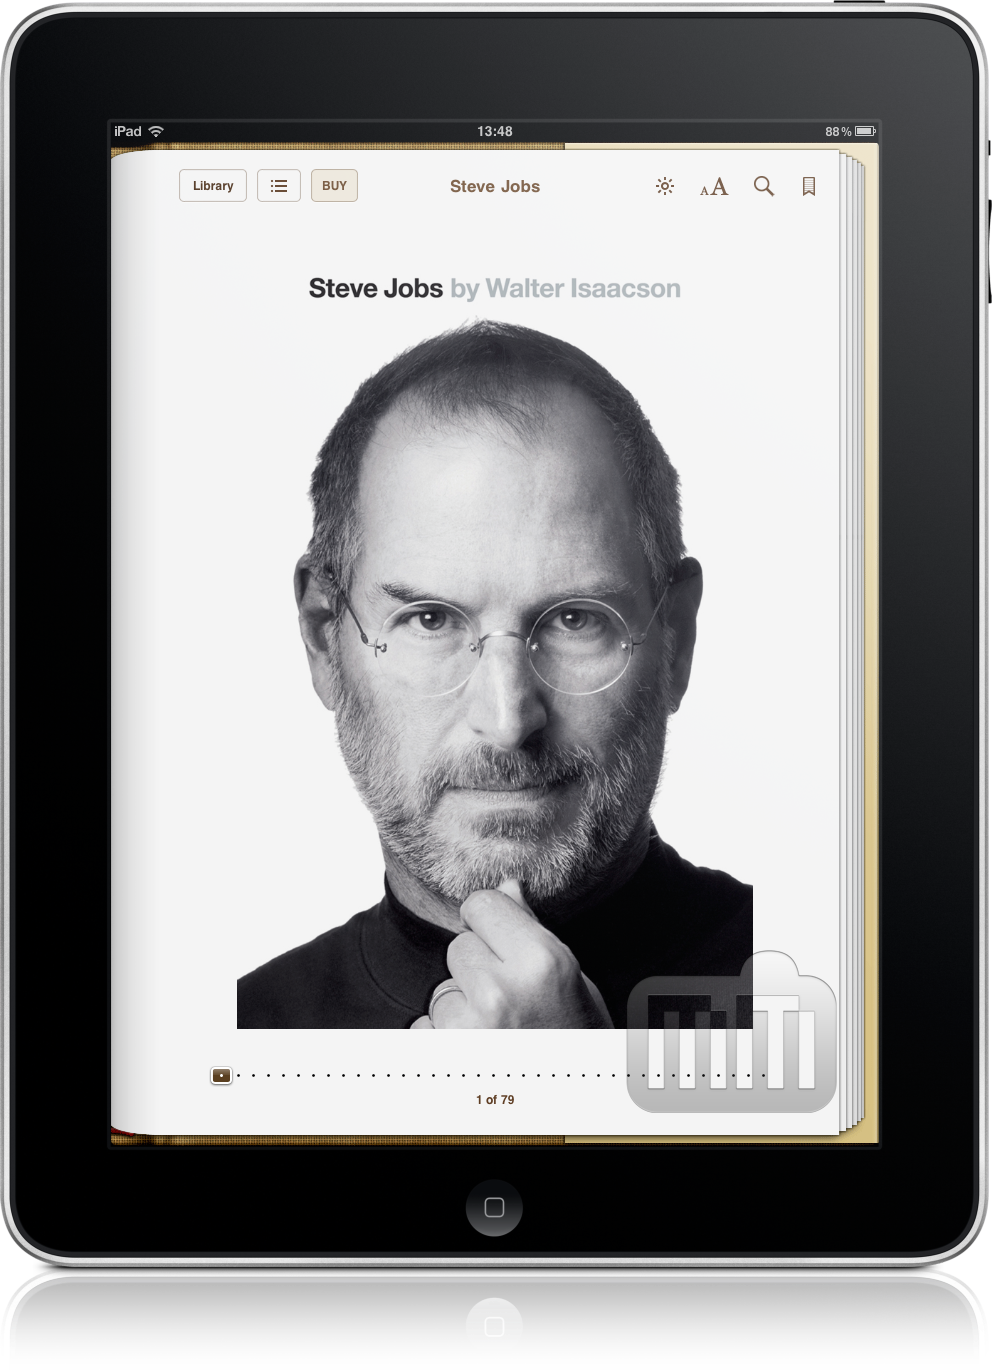 Biografia de Steve Jobs no iPad